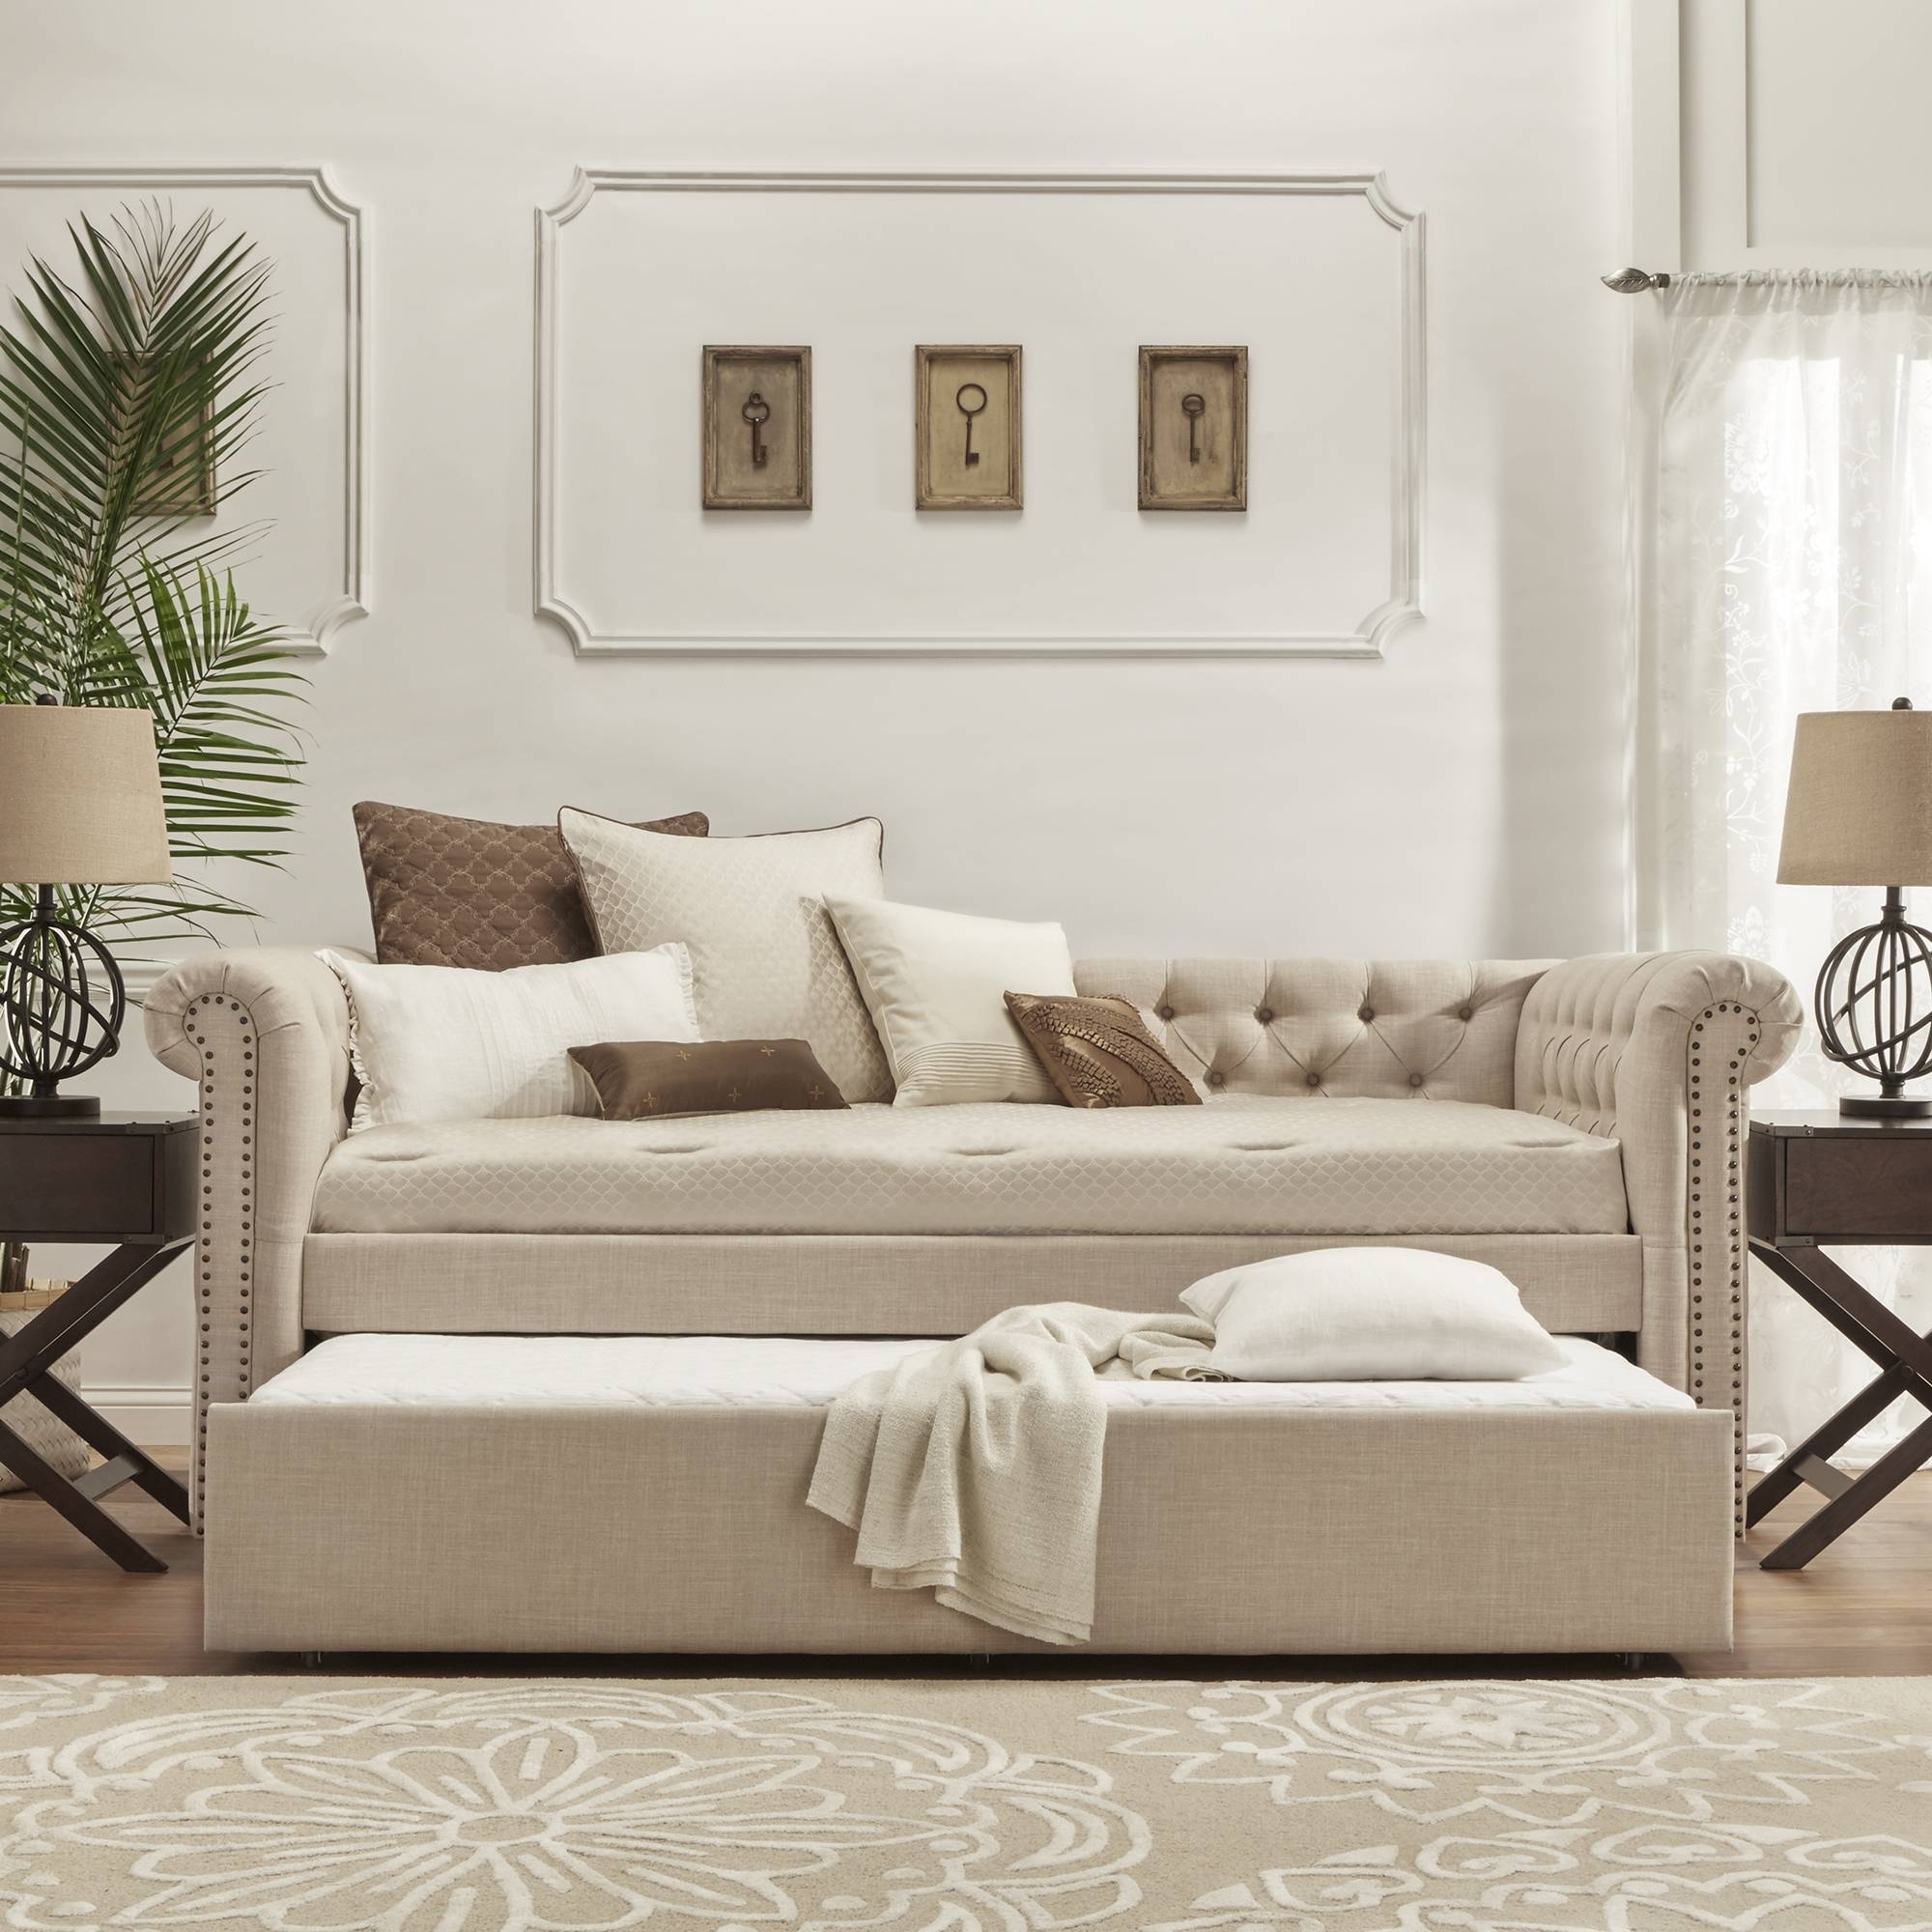 Lovely Sofa Bed With Trundle 90 Sofa Table Ideas With Sofa Bed regarding Sofa Beds With Trundle (Image 12 of 15)